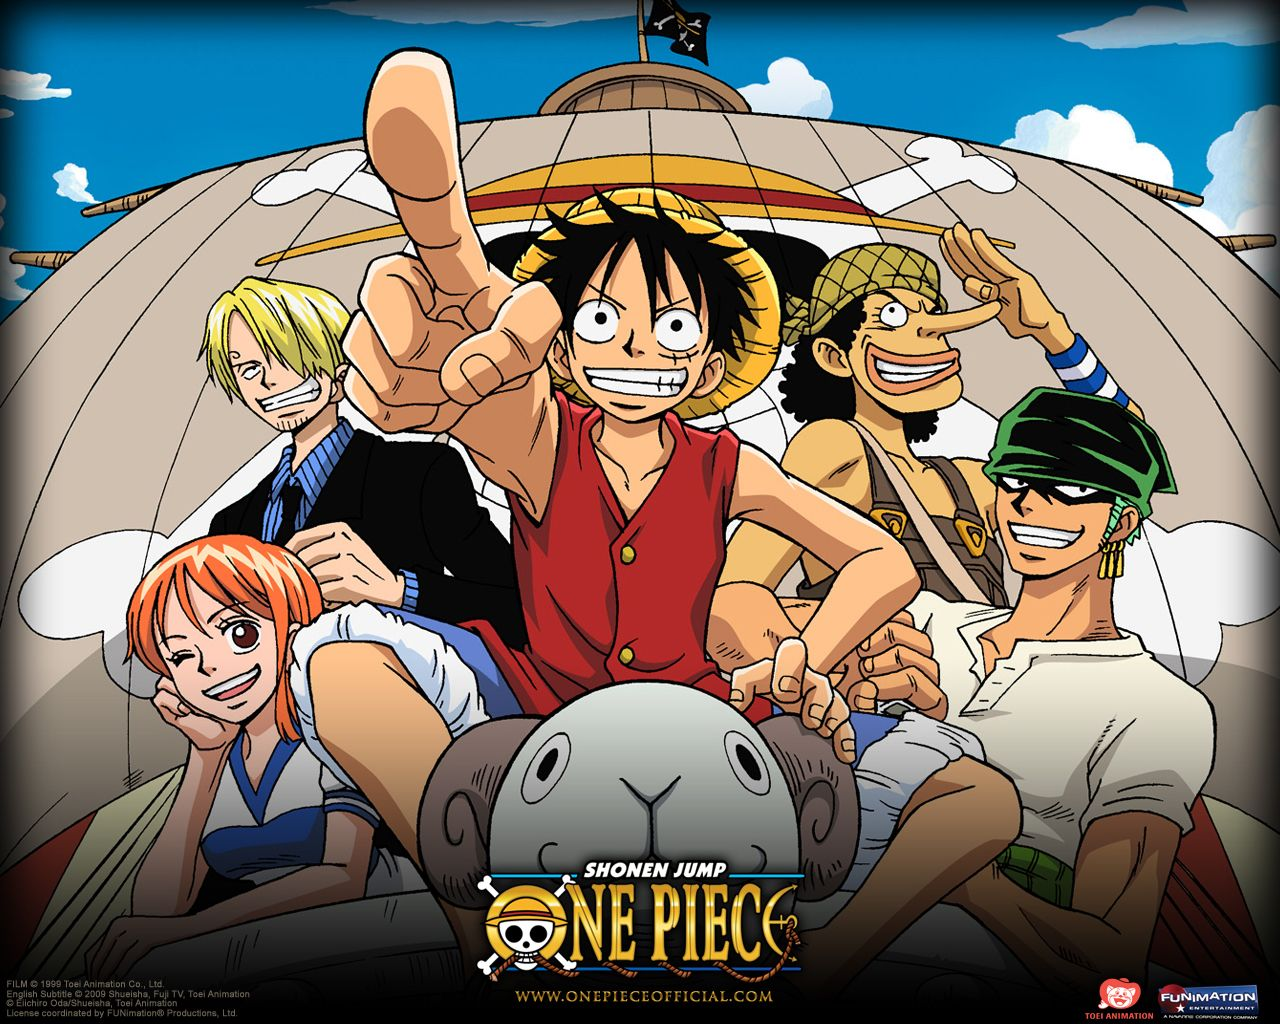 One piece google search sf one piece is a japanese manga series written by eiichiro oda sf